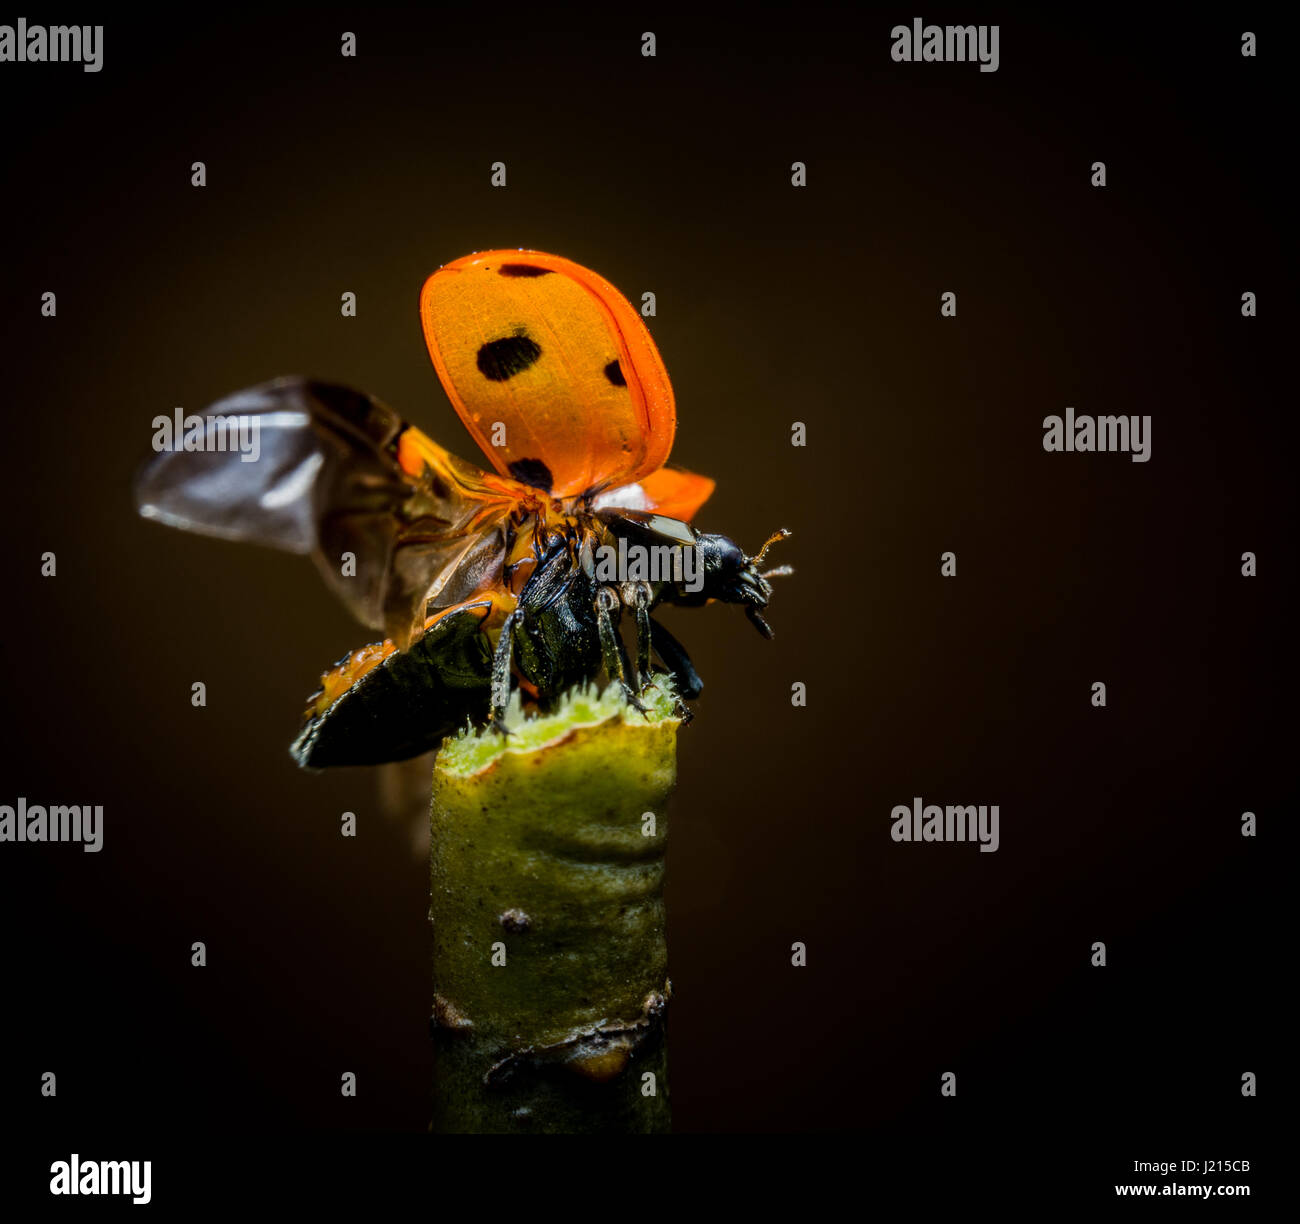 Beautiful ladybug starts takeoff from green twig macro photo - Stock Image